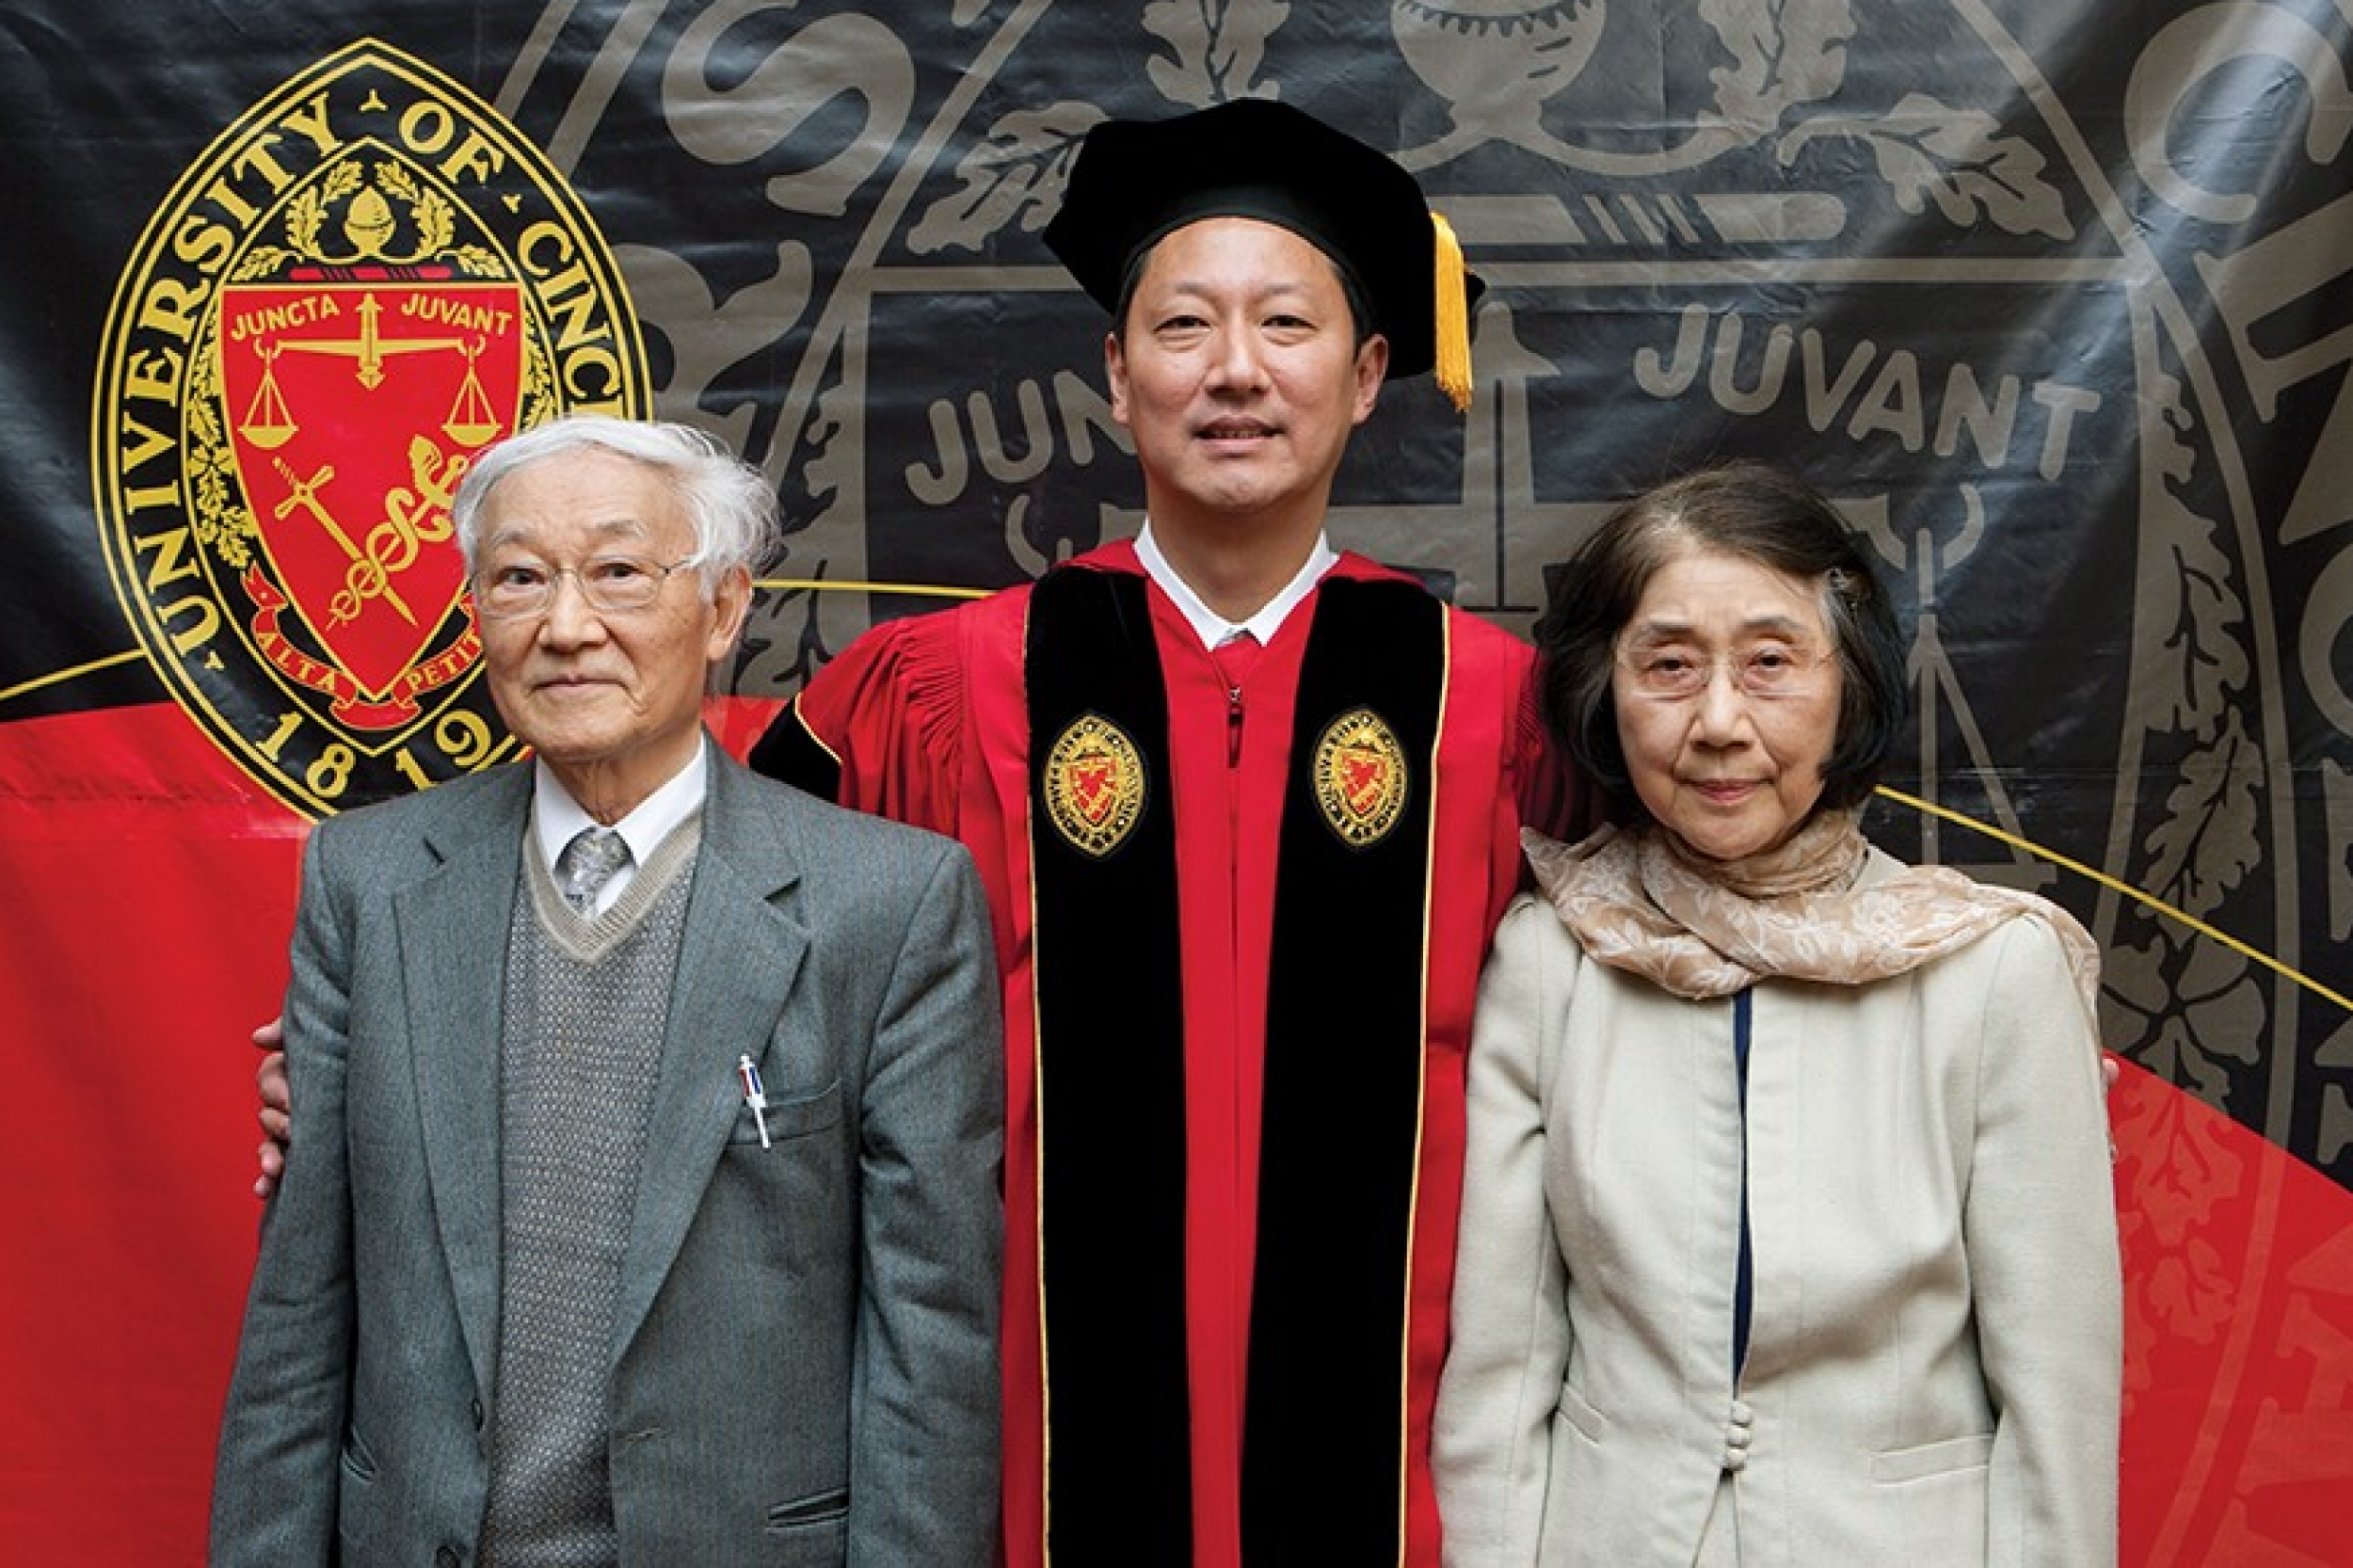 University of Cincinnati President Santa Ono at his investiture, with his father and mother.